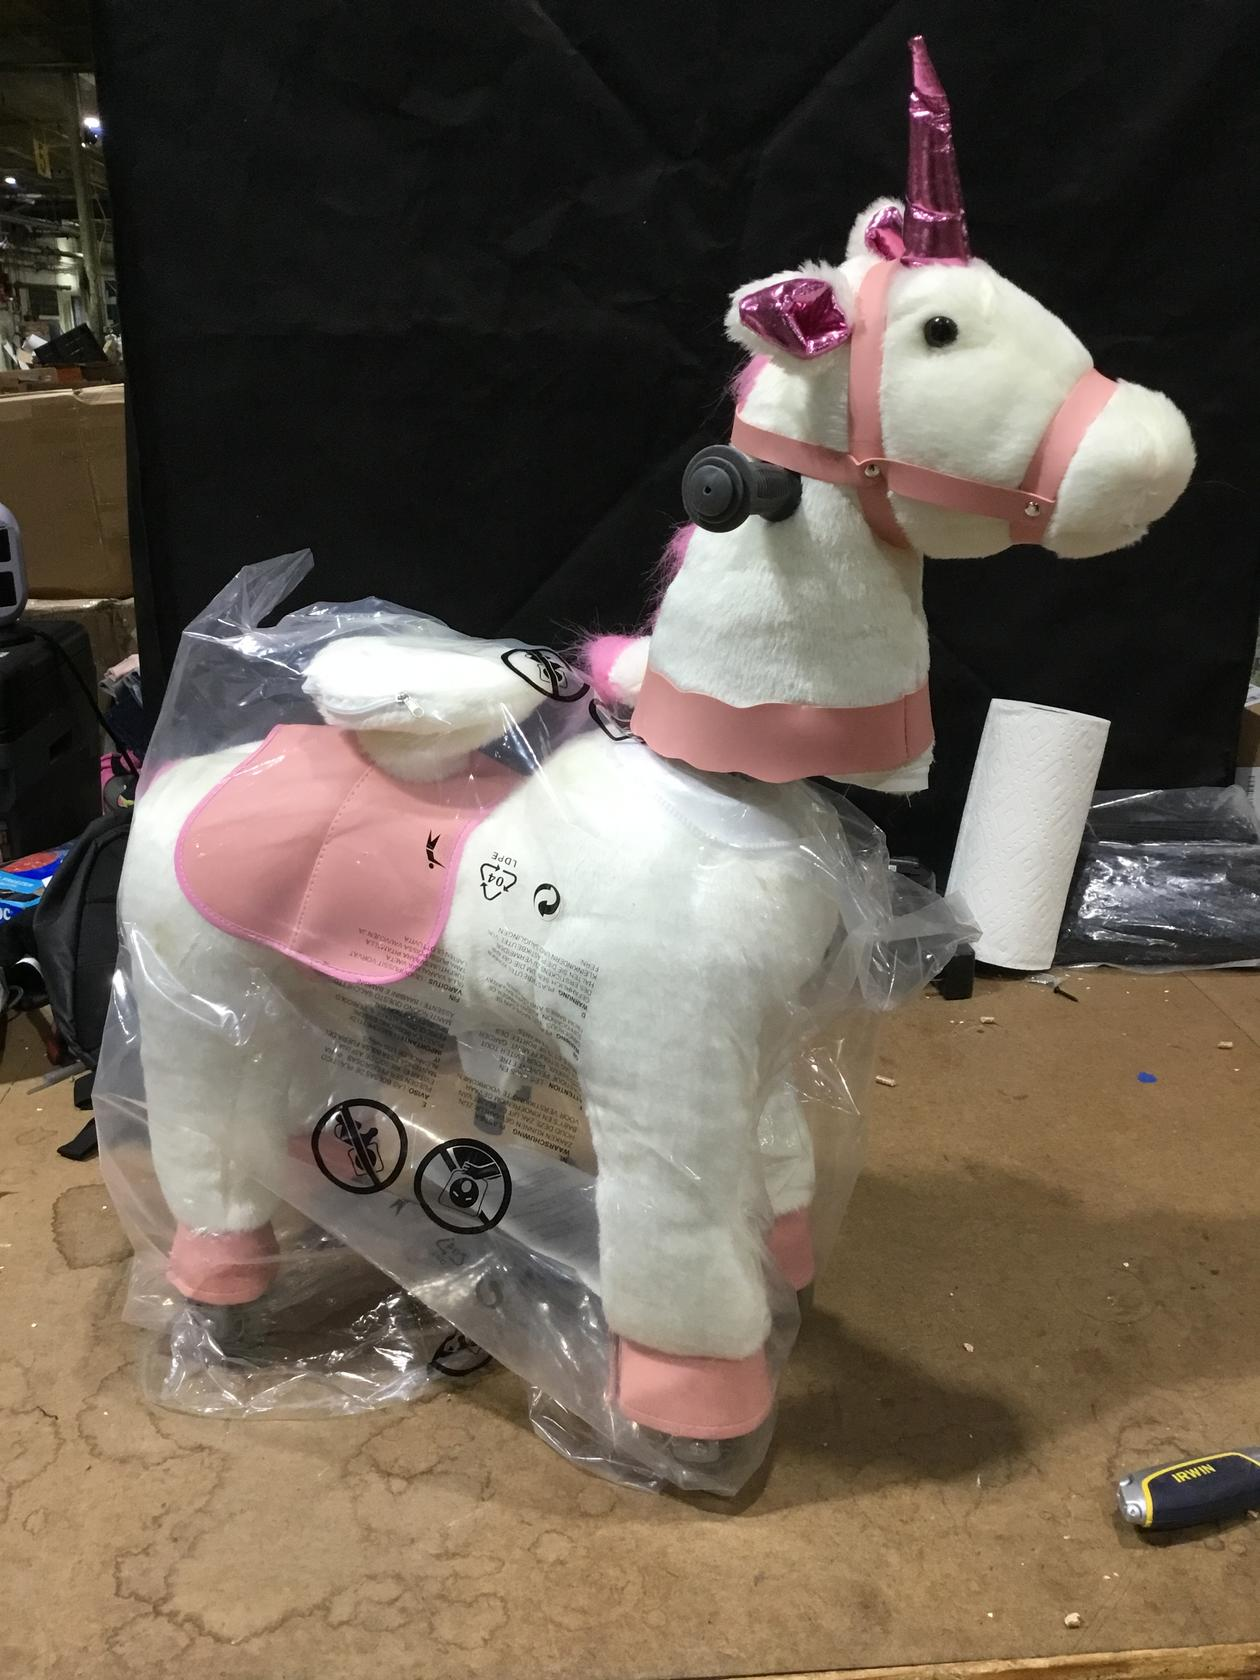 Ride on Unicorn Toy, Kids Ride on Toy for 3-6 Years Old, Premium Ride on Horse Plush Animal Toy, Walking Unicorn Horse with Wheels (27 Inch Height)